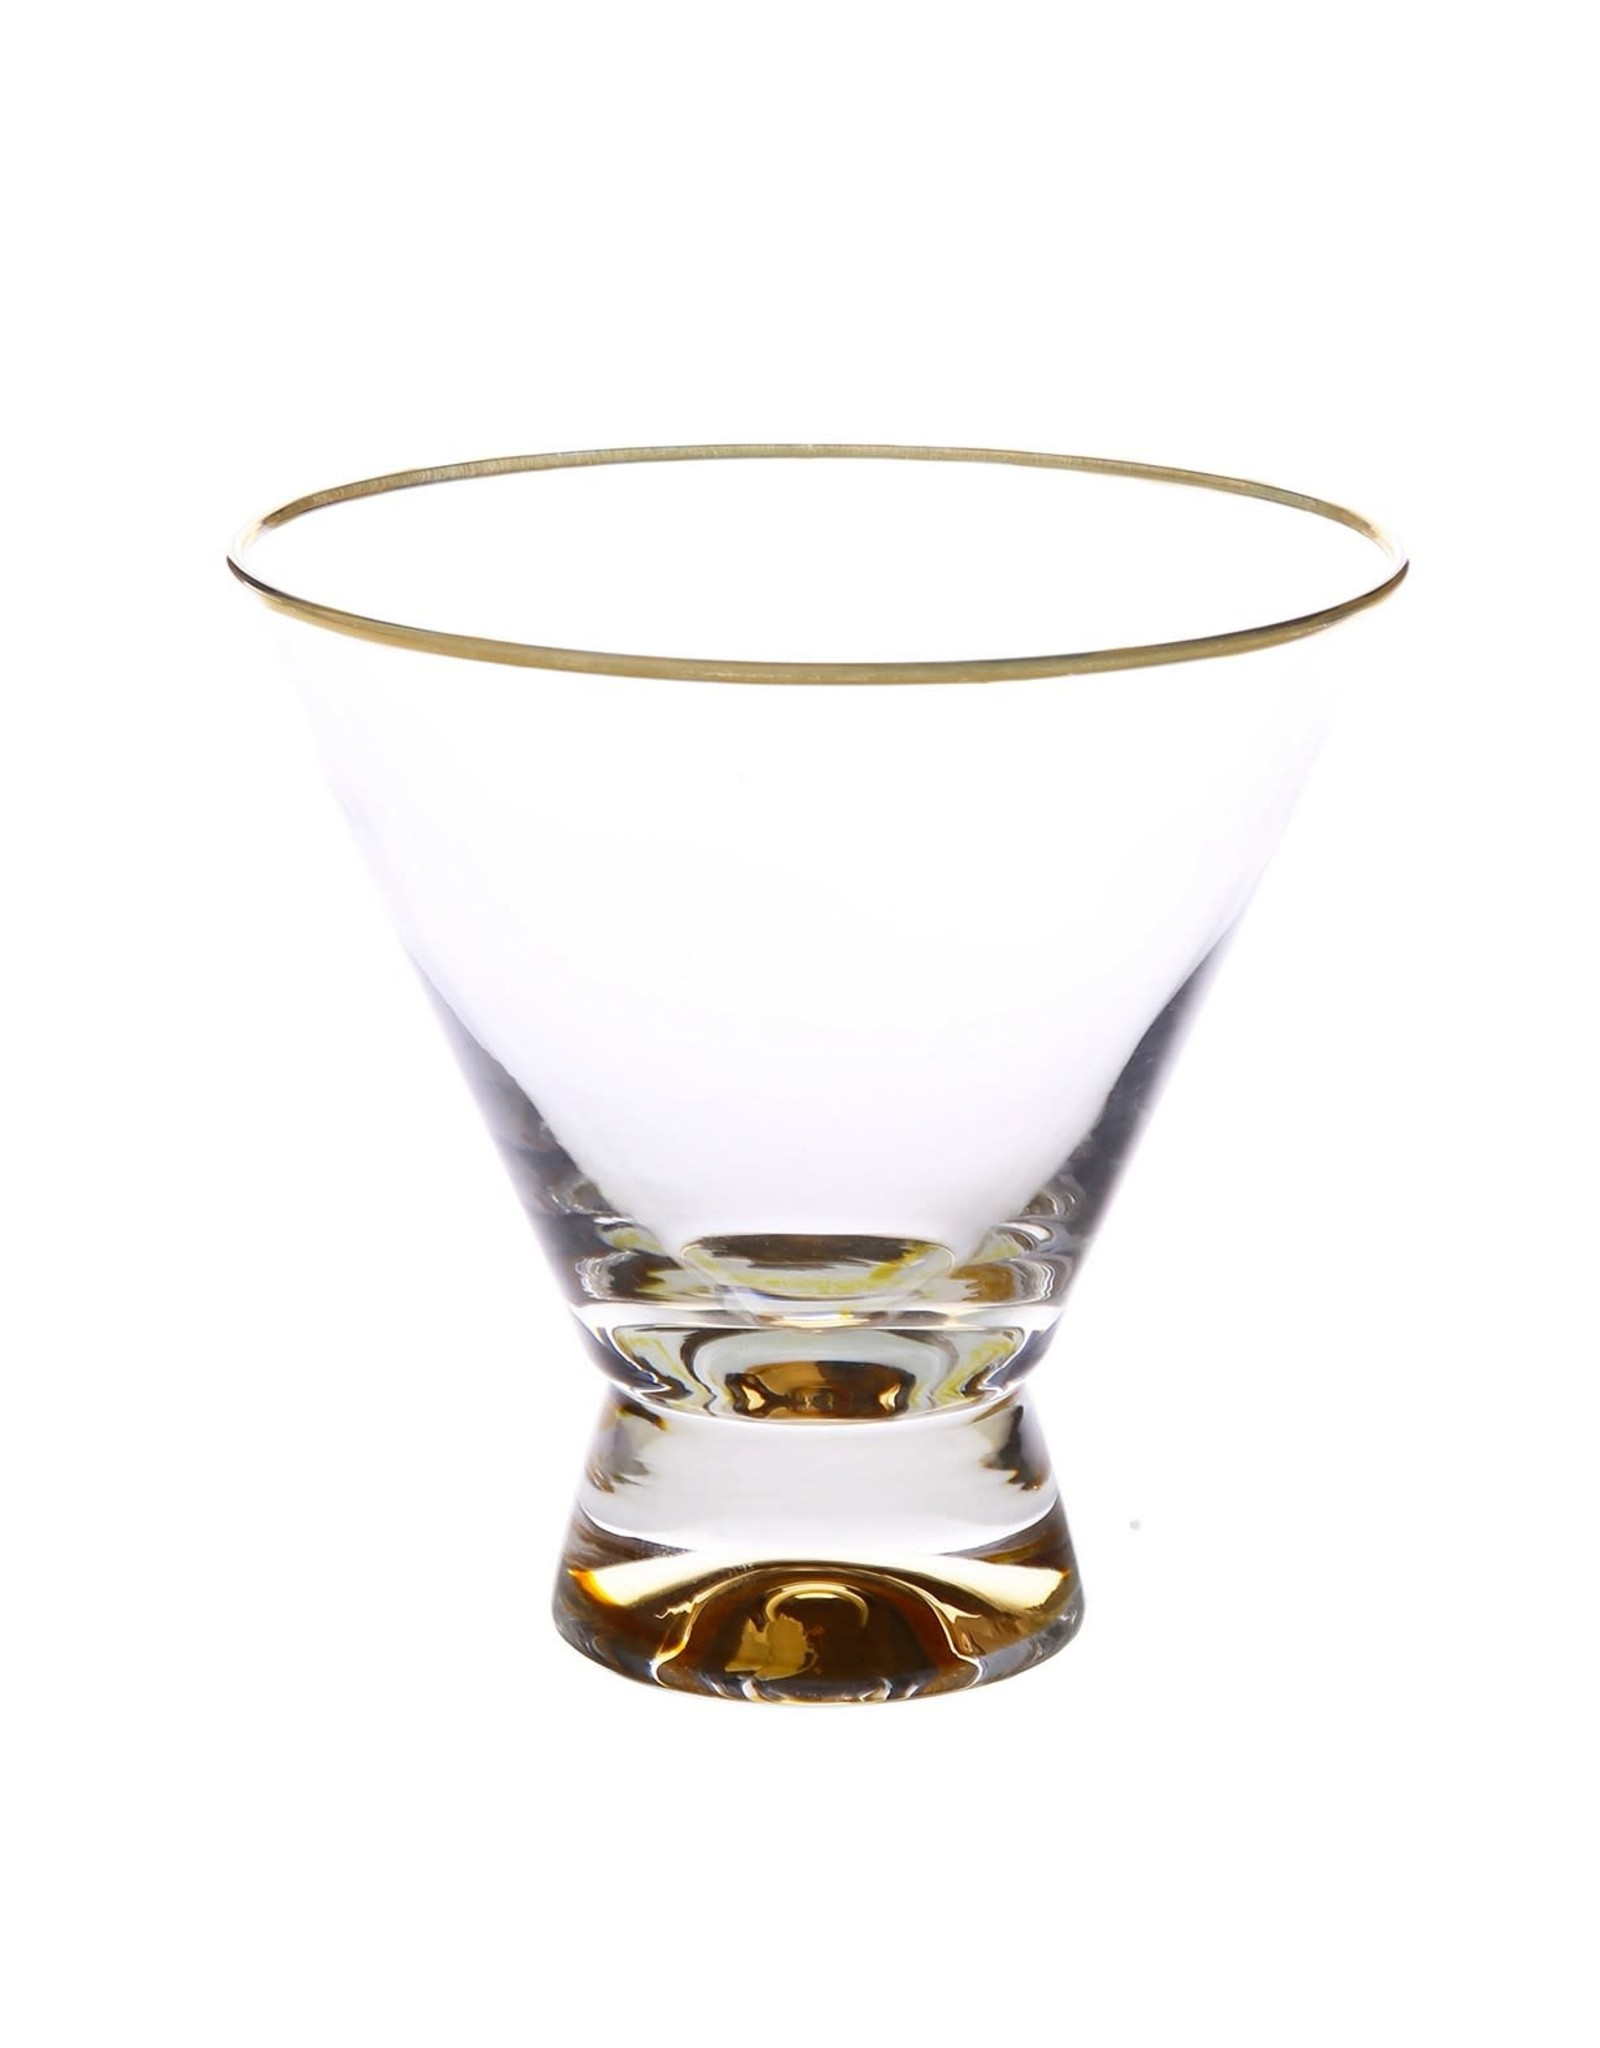 """DG853 Dessert Cups with Gold Base and Rim - 4""""D x 4""""H"""